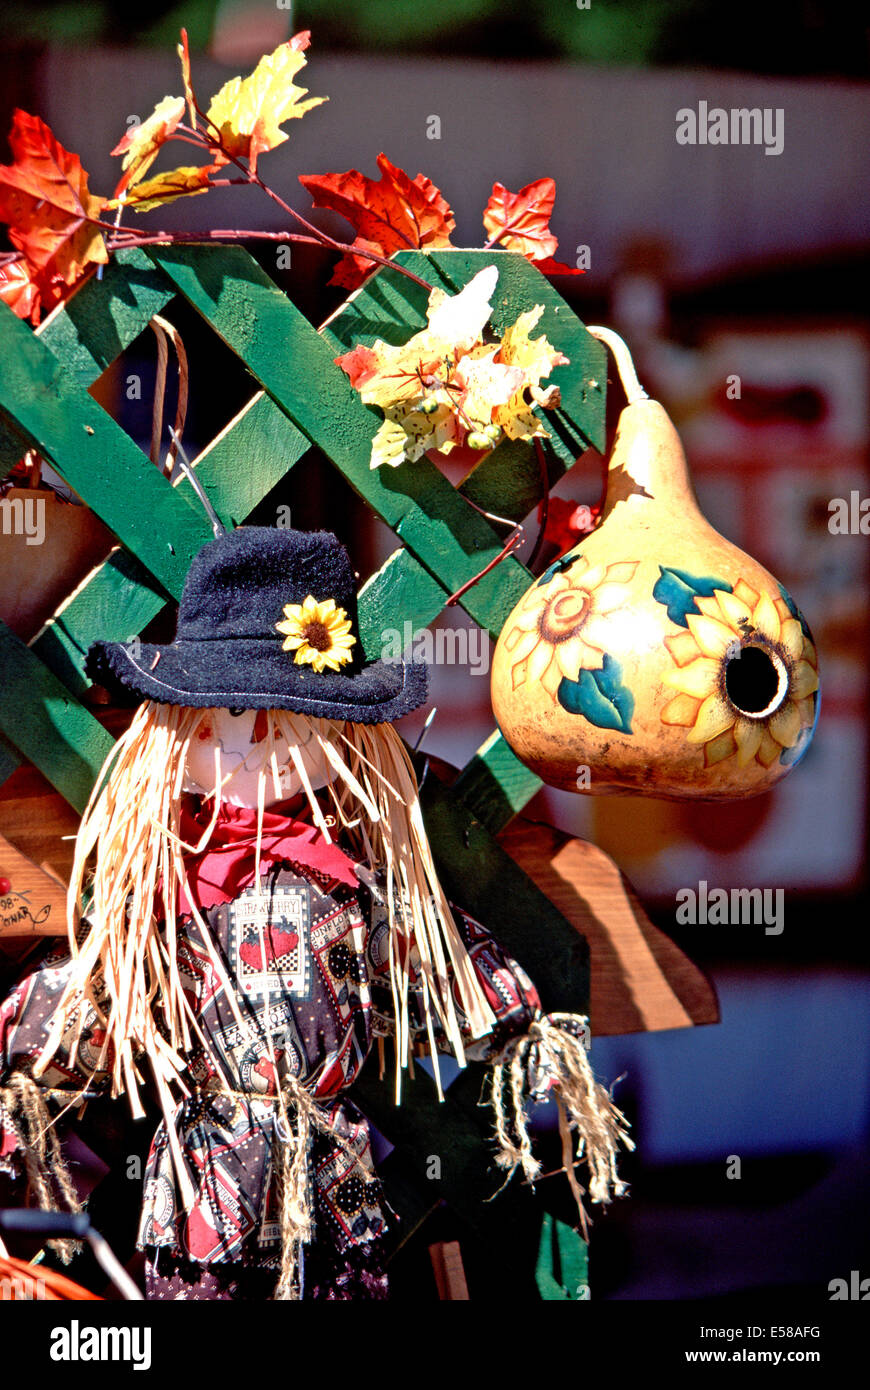 Fall crafts for sale,Museum of Appalachia,Tennessee - Stock Image